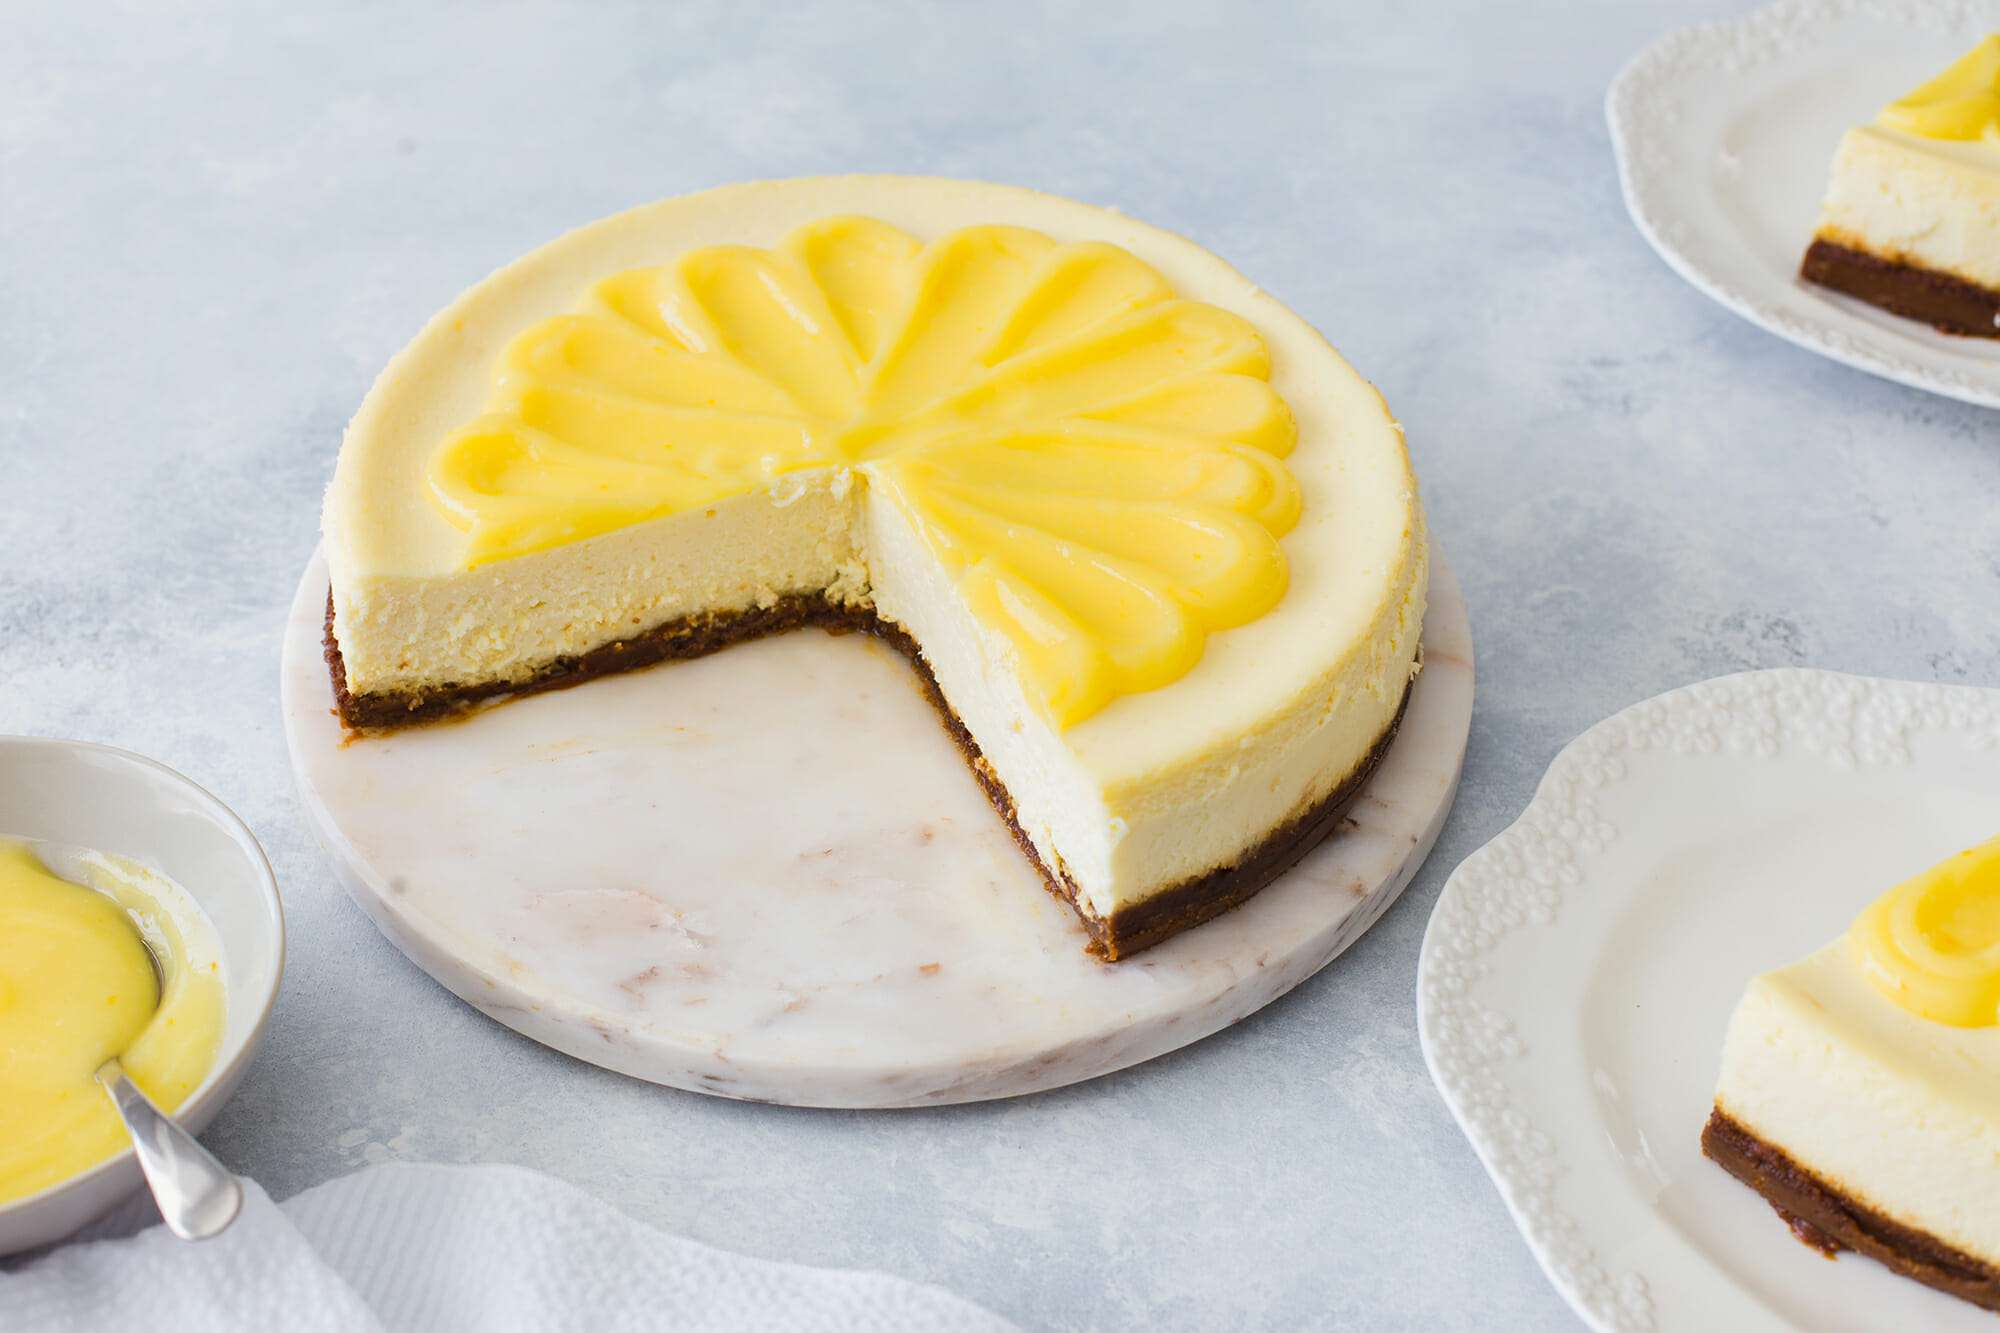 Lemon Curd Cheesecake - Lemon cheese cake with 1/4 of the slices removed